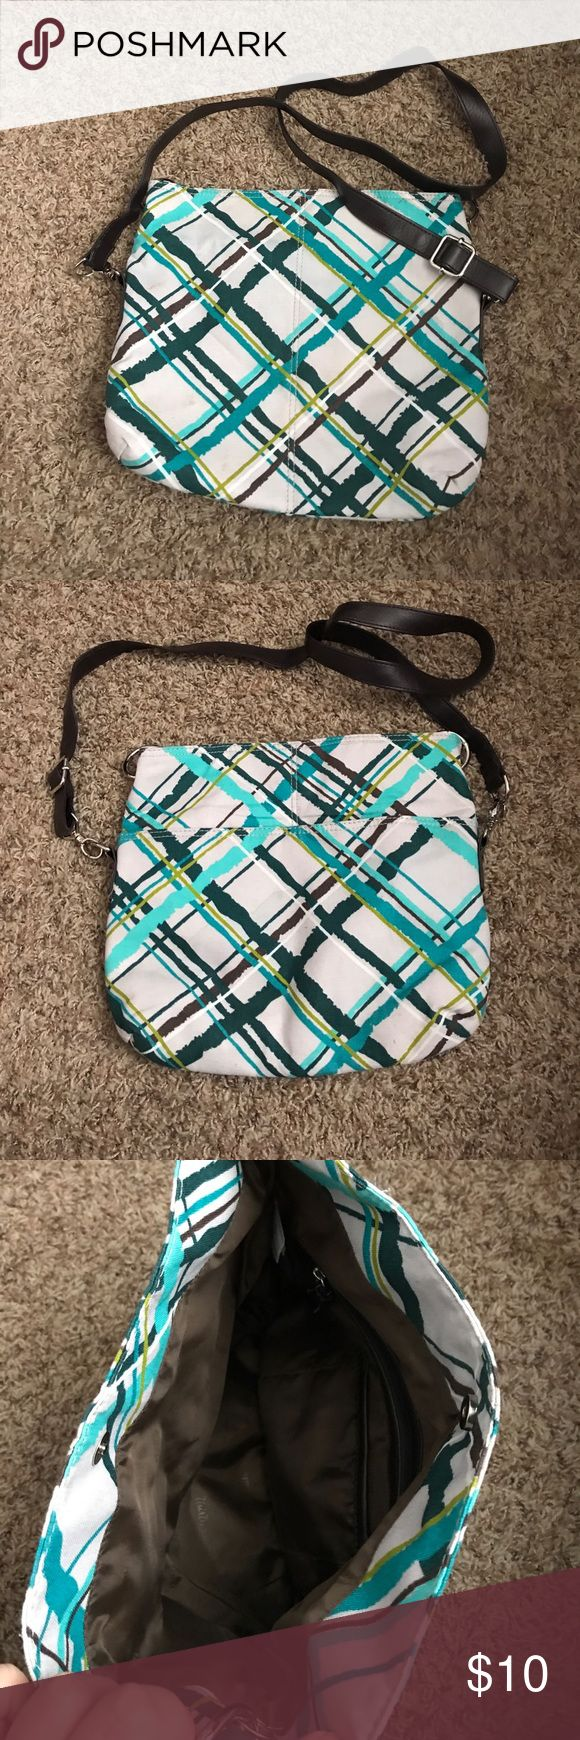 Thirty One Shoulder/Crossbody Bag Barely used but the outside could use a light clean. Given to me as a gift, not really my style. Make me an offer! Thirty One Bags Crossbody Bags